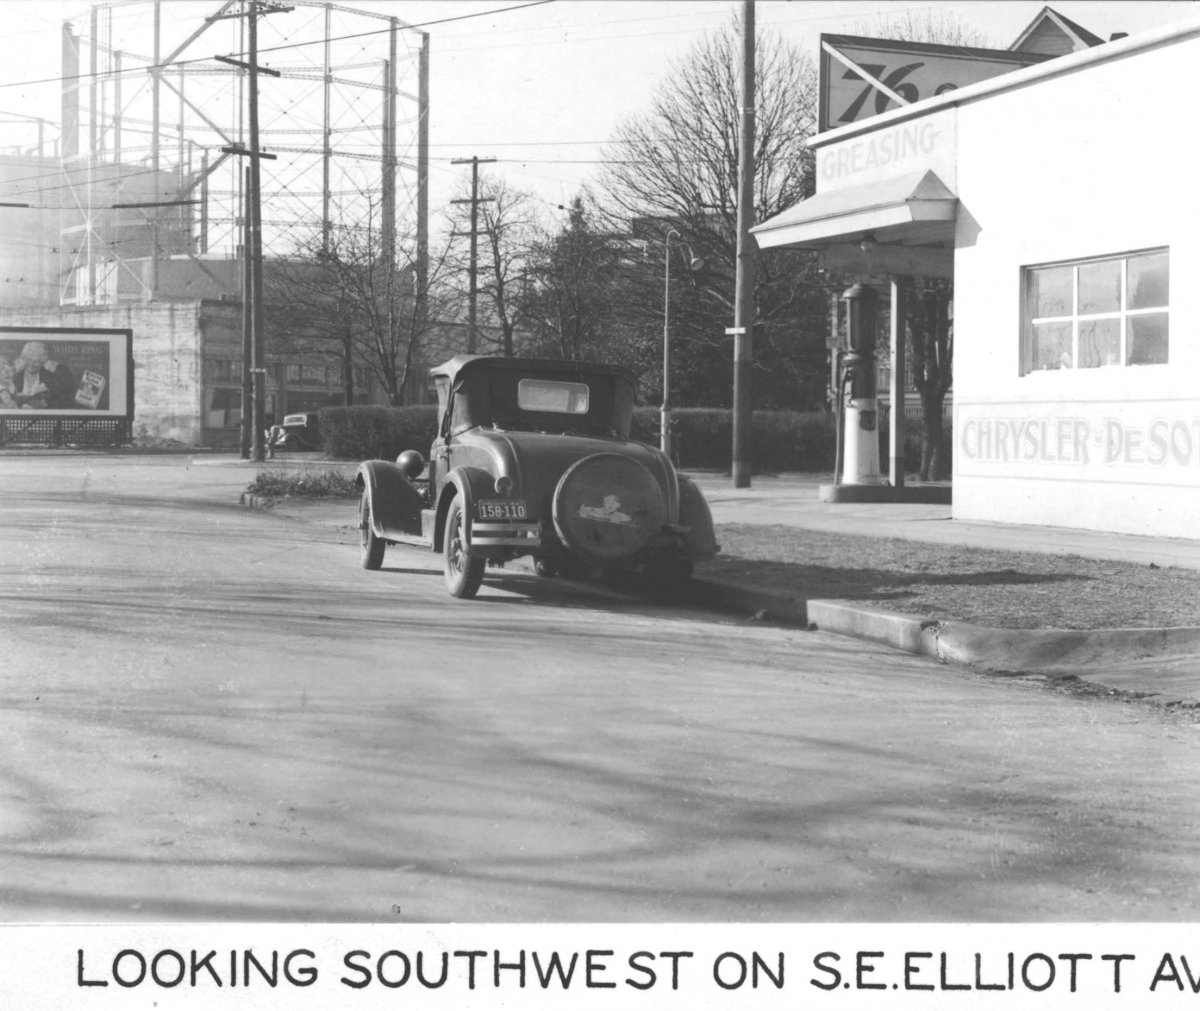 a2005-001-1029-se-elliott-ave-sw-to-12th-and-division-1937sml.jpg